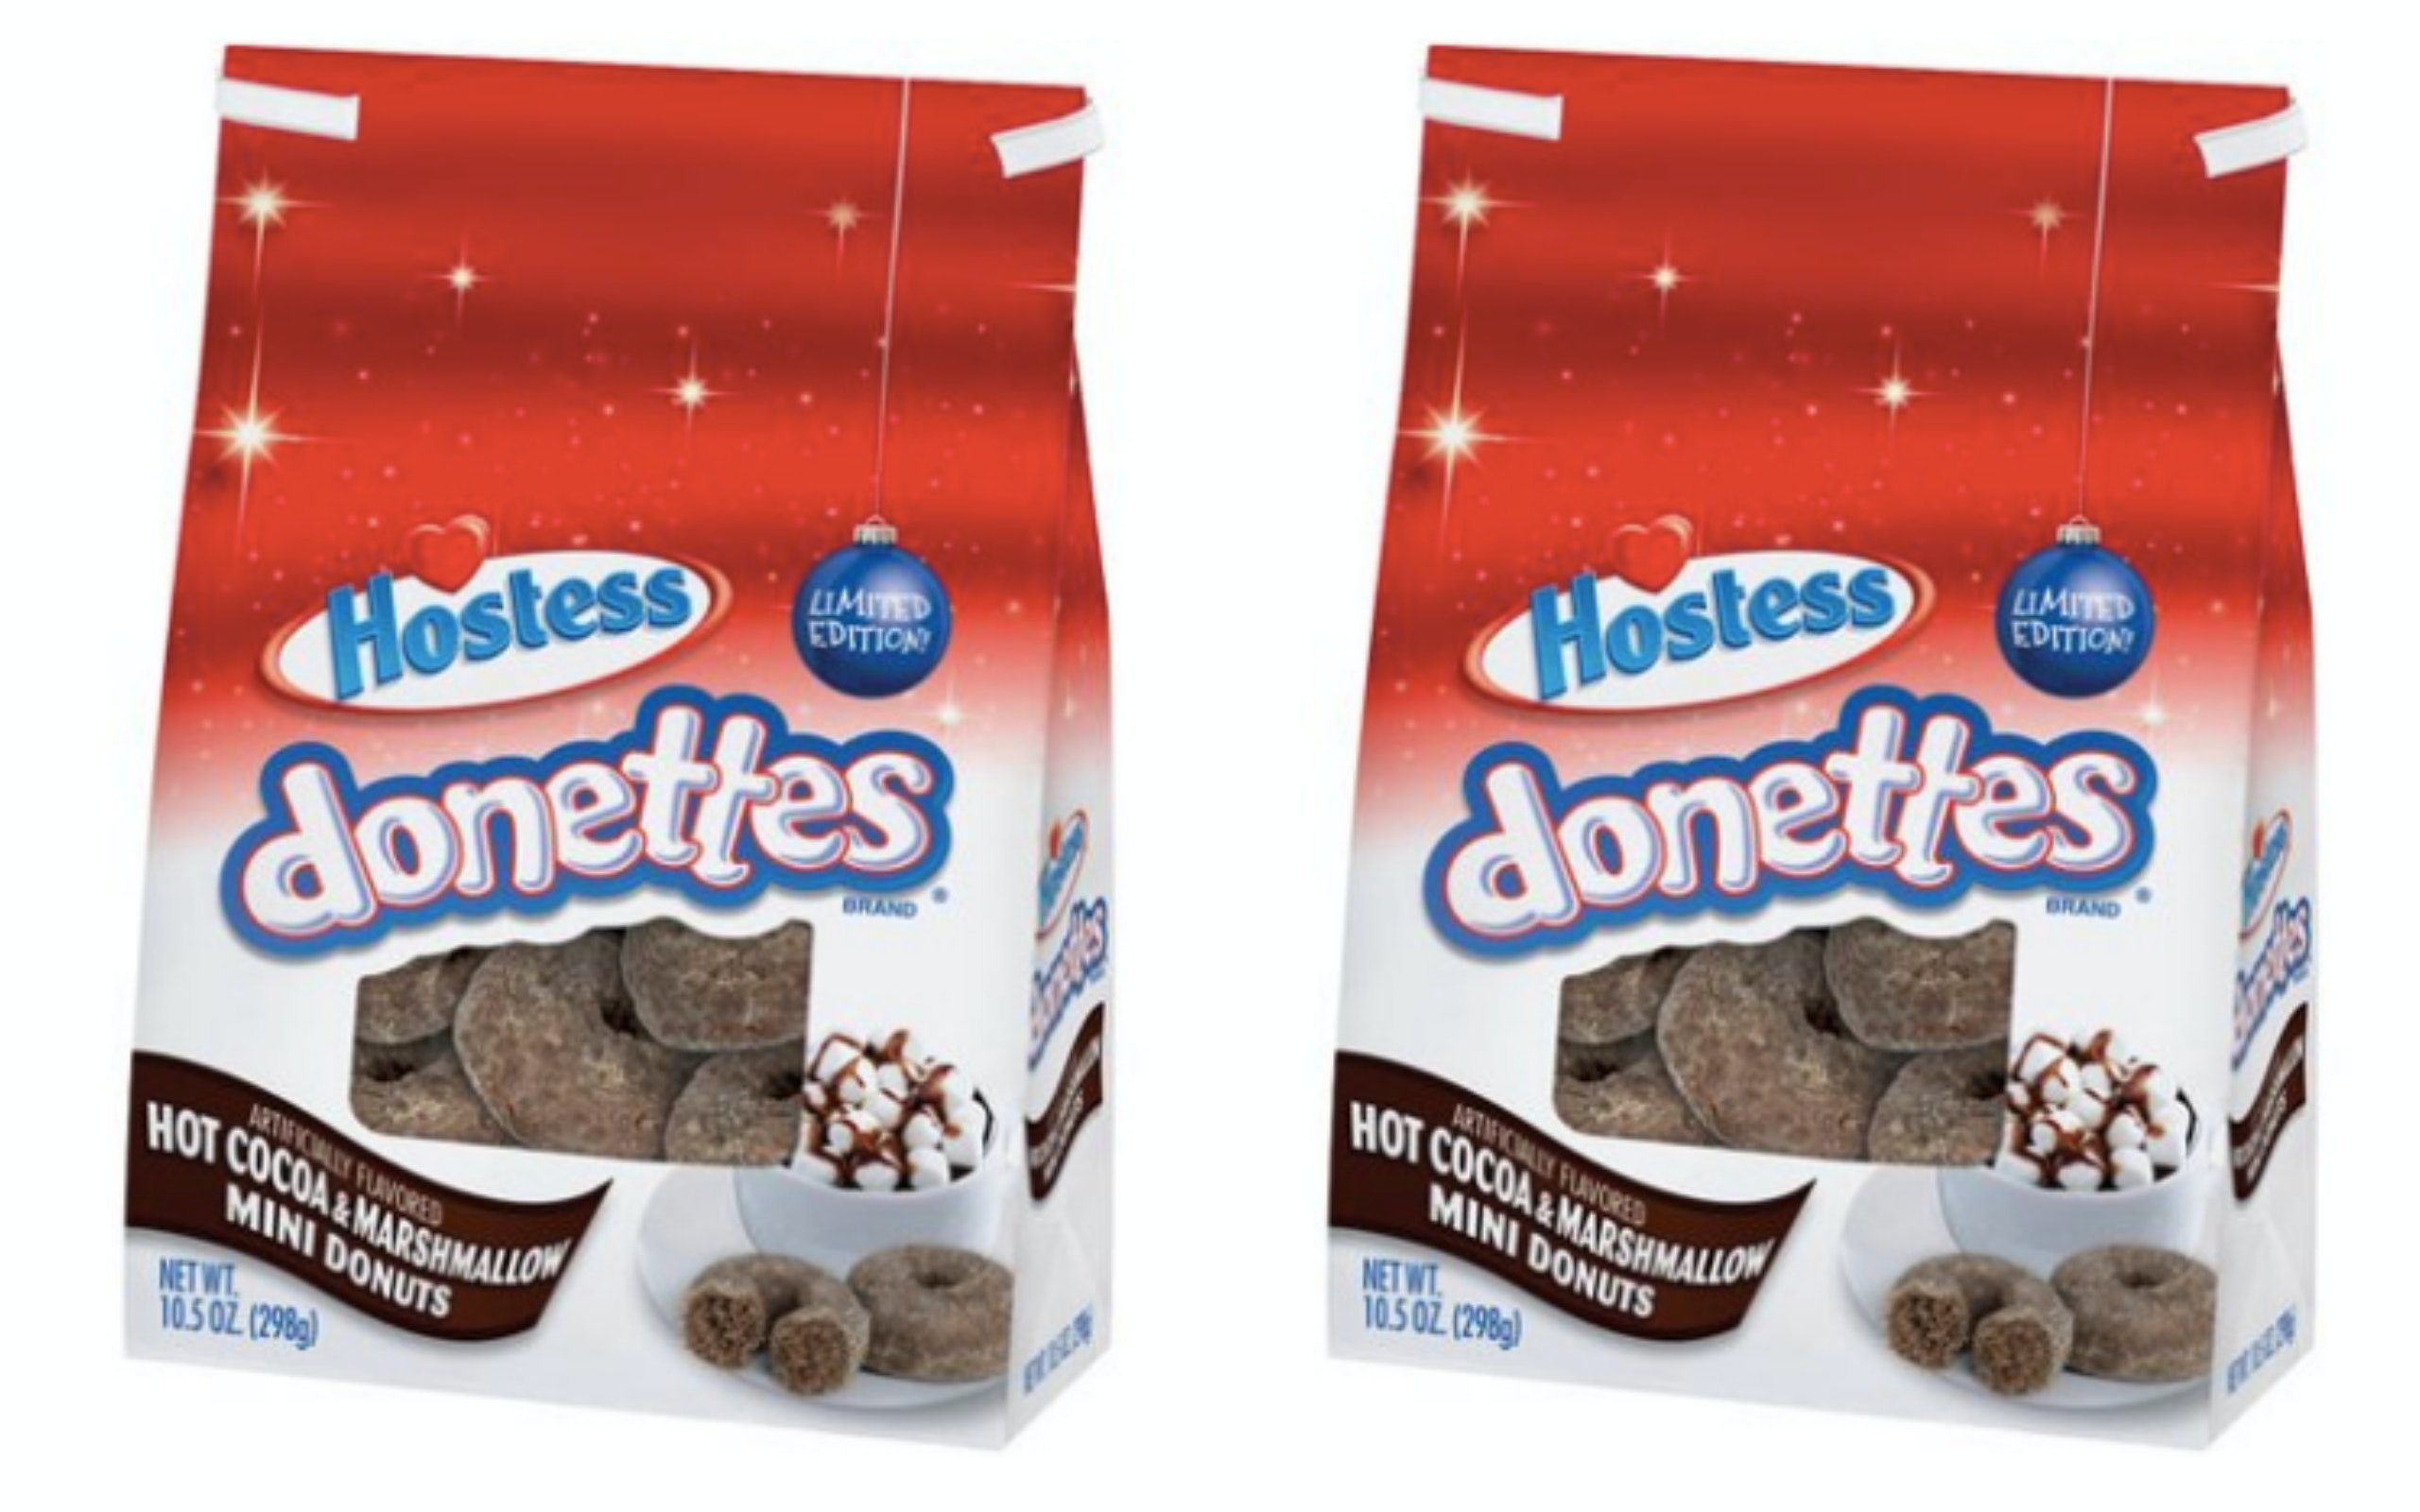 Hostesss Hot Cocoa Marshmallow Flavored Mini Donuts Are Available